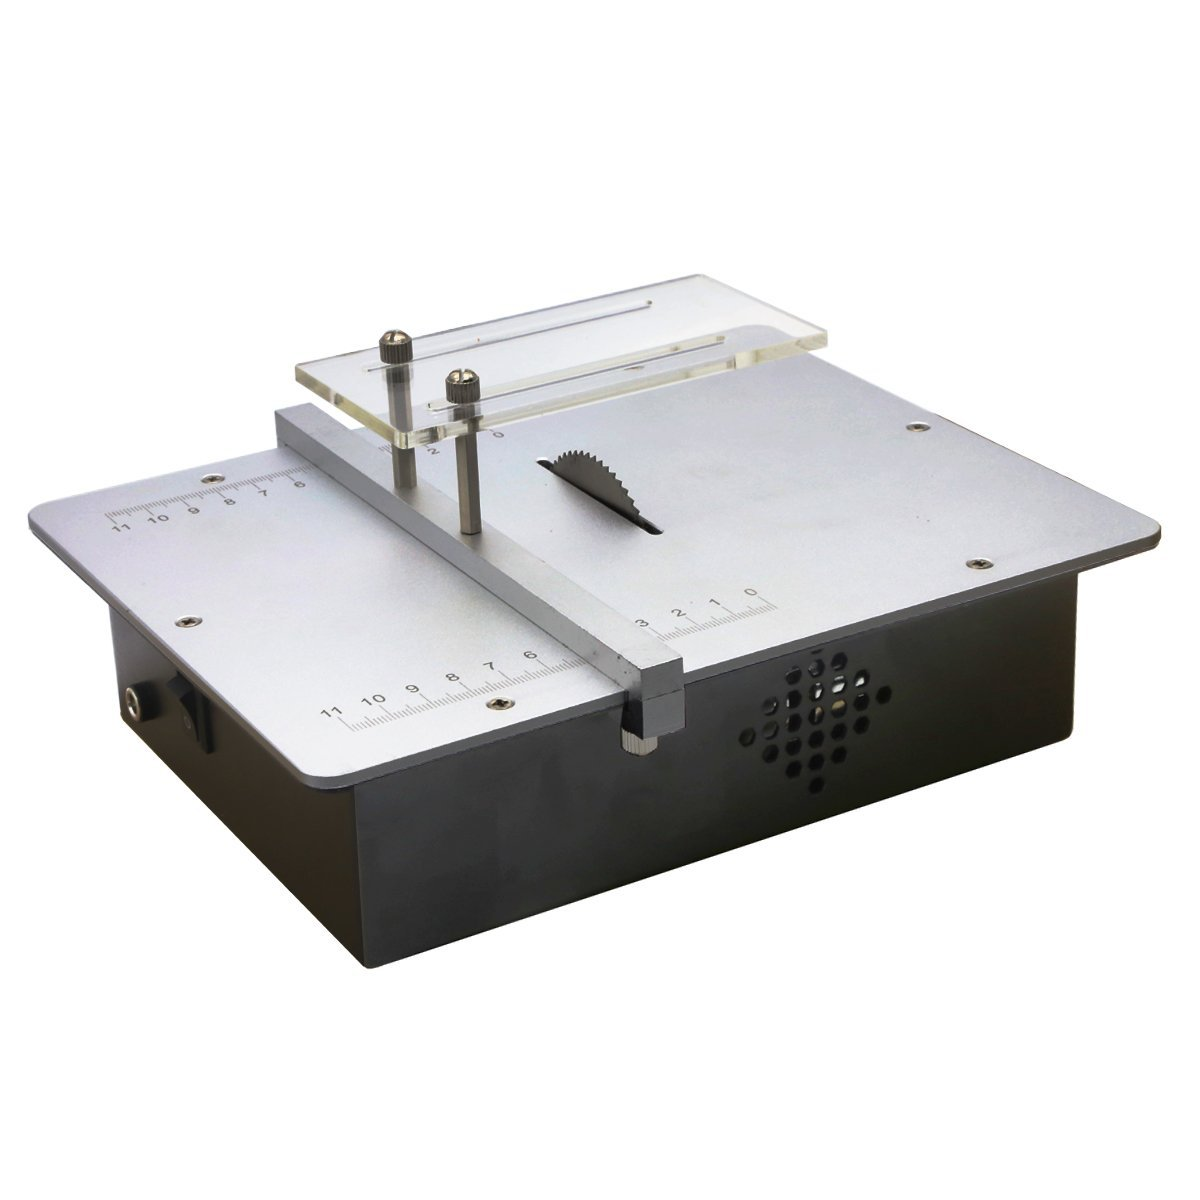 AMPSEVEN Micro Mini Table Saws Pcb Acrylic Cutting Machine Simple Metal Model Sawing Woodworking Saw - Mini Table Saws